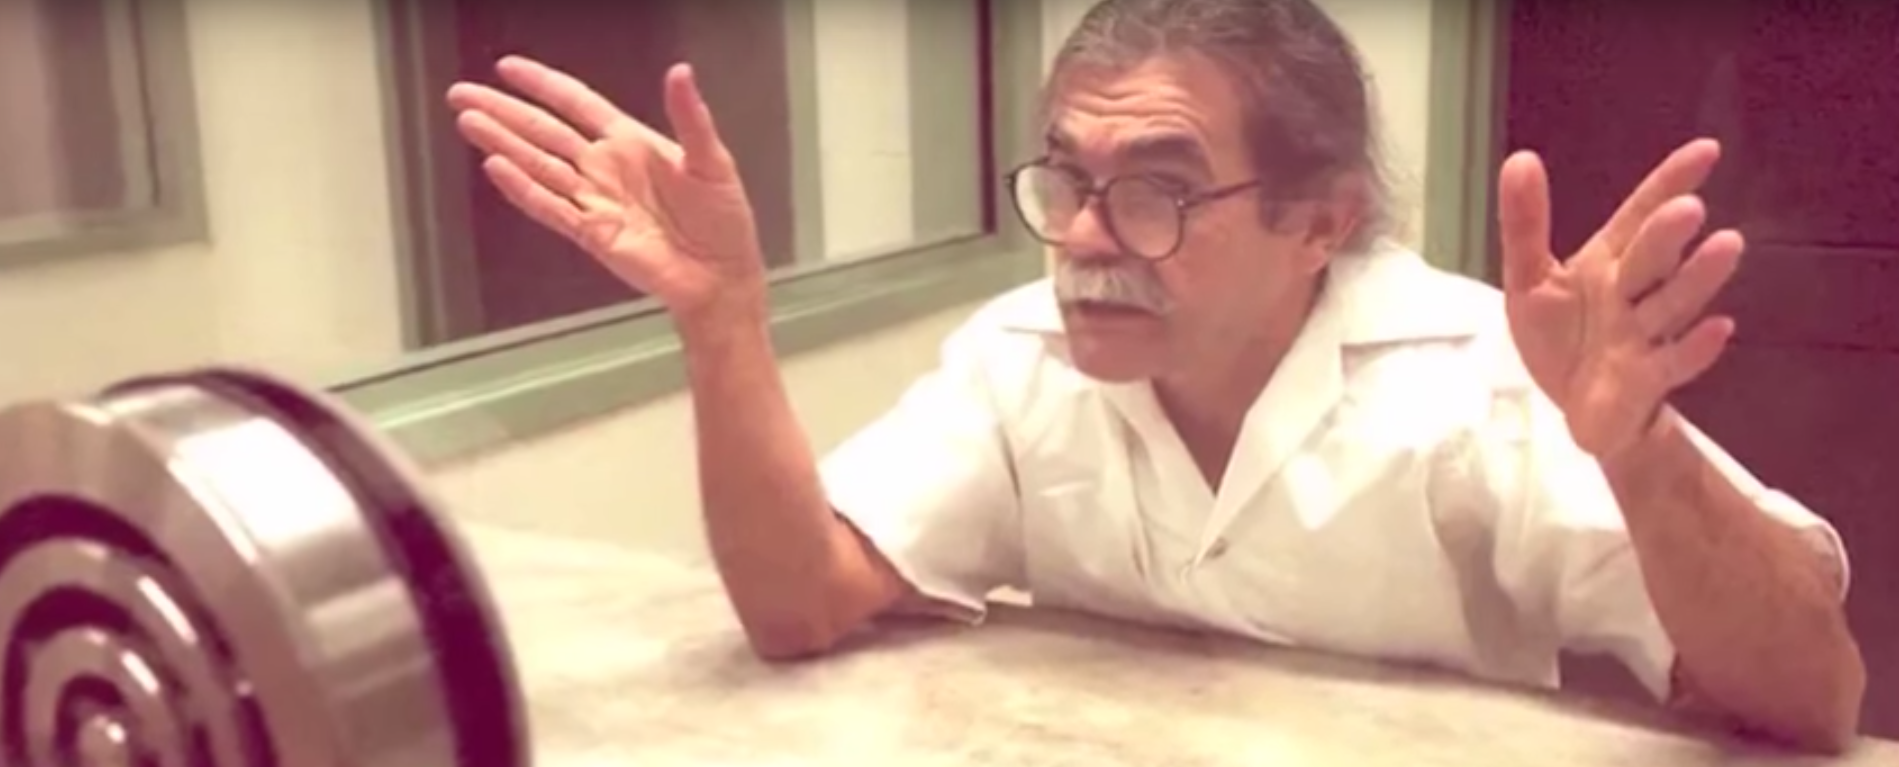 "Obama Commutes Domestic Terrorist Oscar Lopez Rivera, Leader Of 1970's Terror Group ""FALN"" Featured"